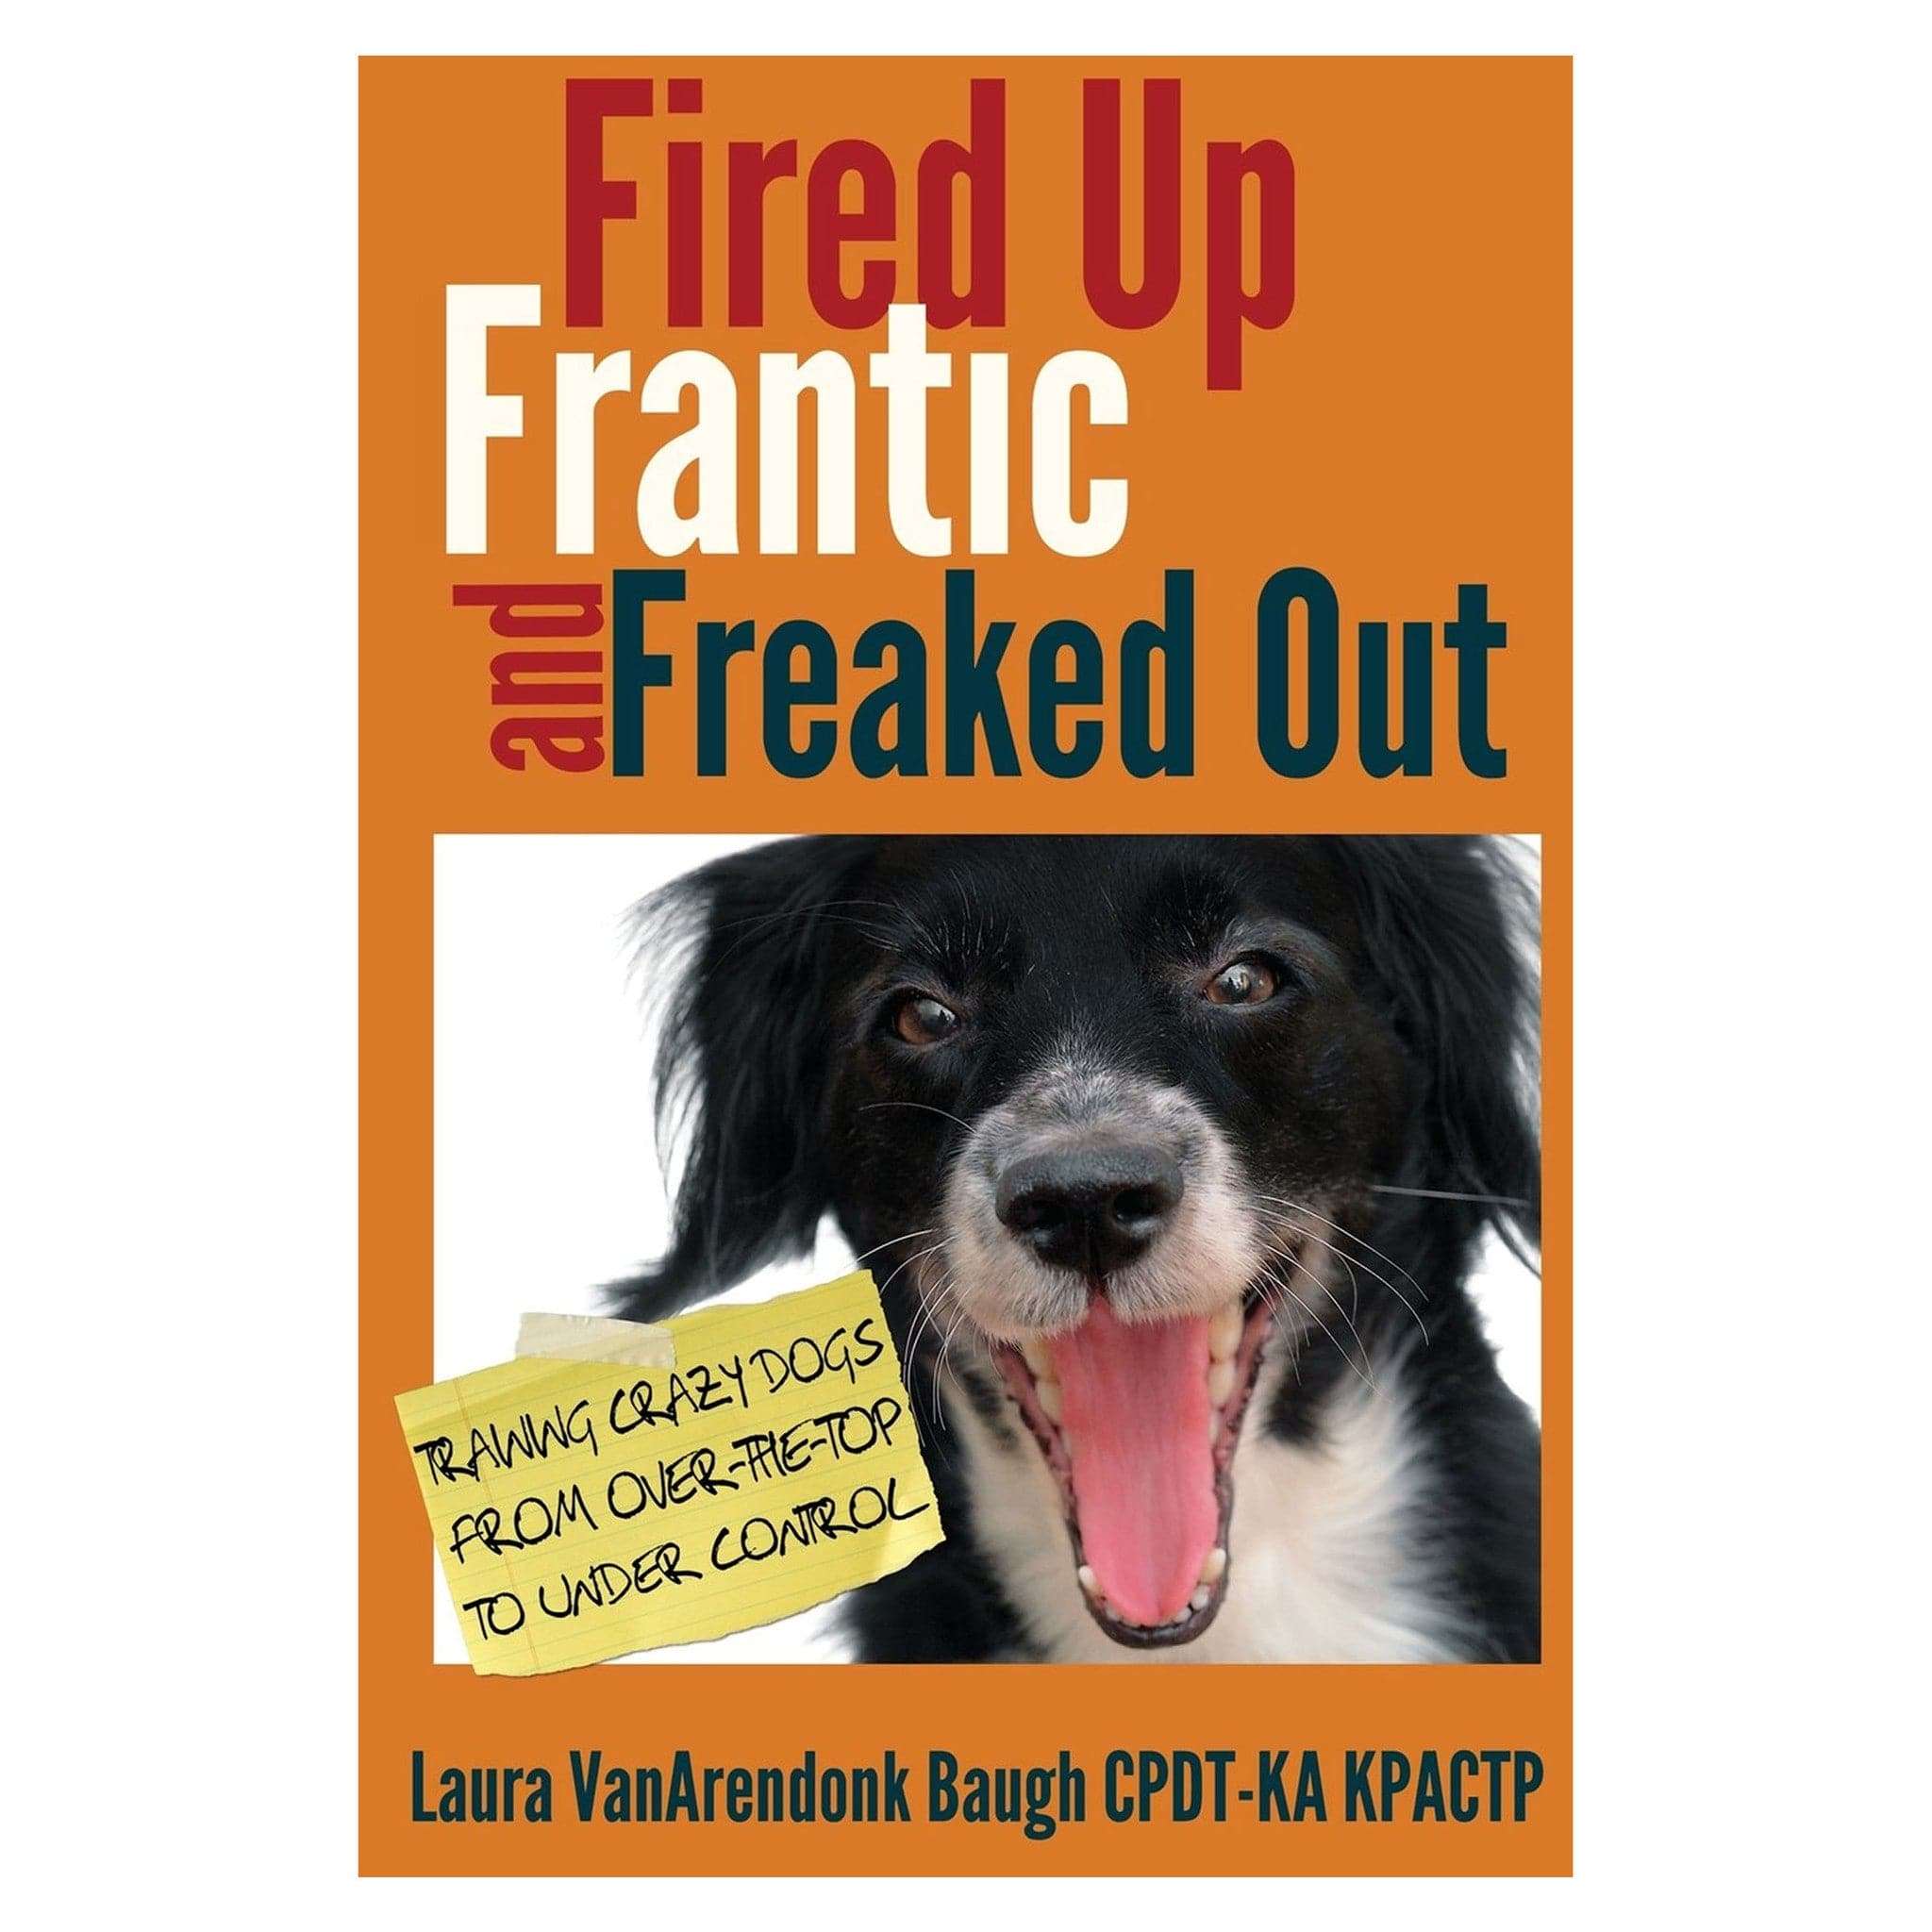 Fired Up, Frantic, and Freaked Out: Training the Crazy Dog from Over-the-Top to Under Control Expo